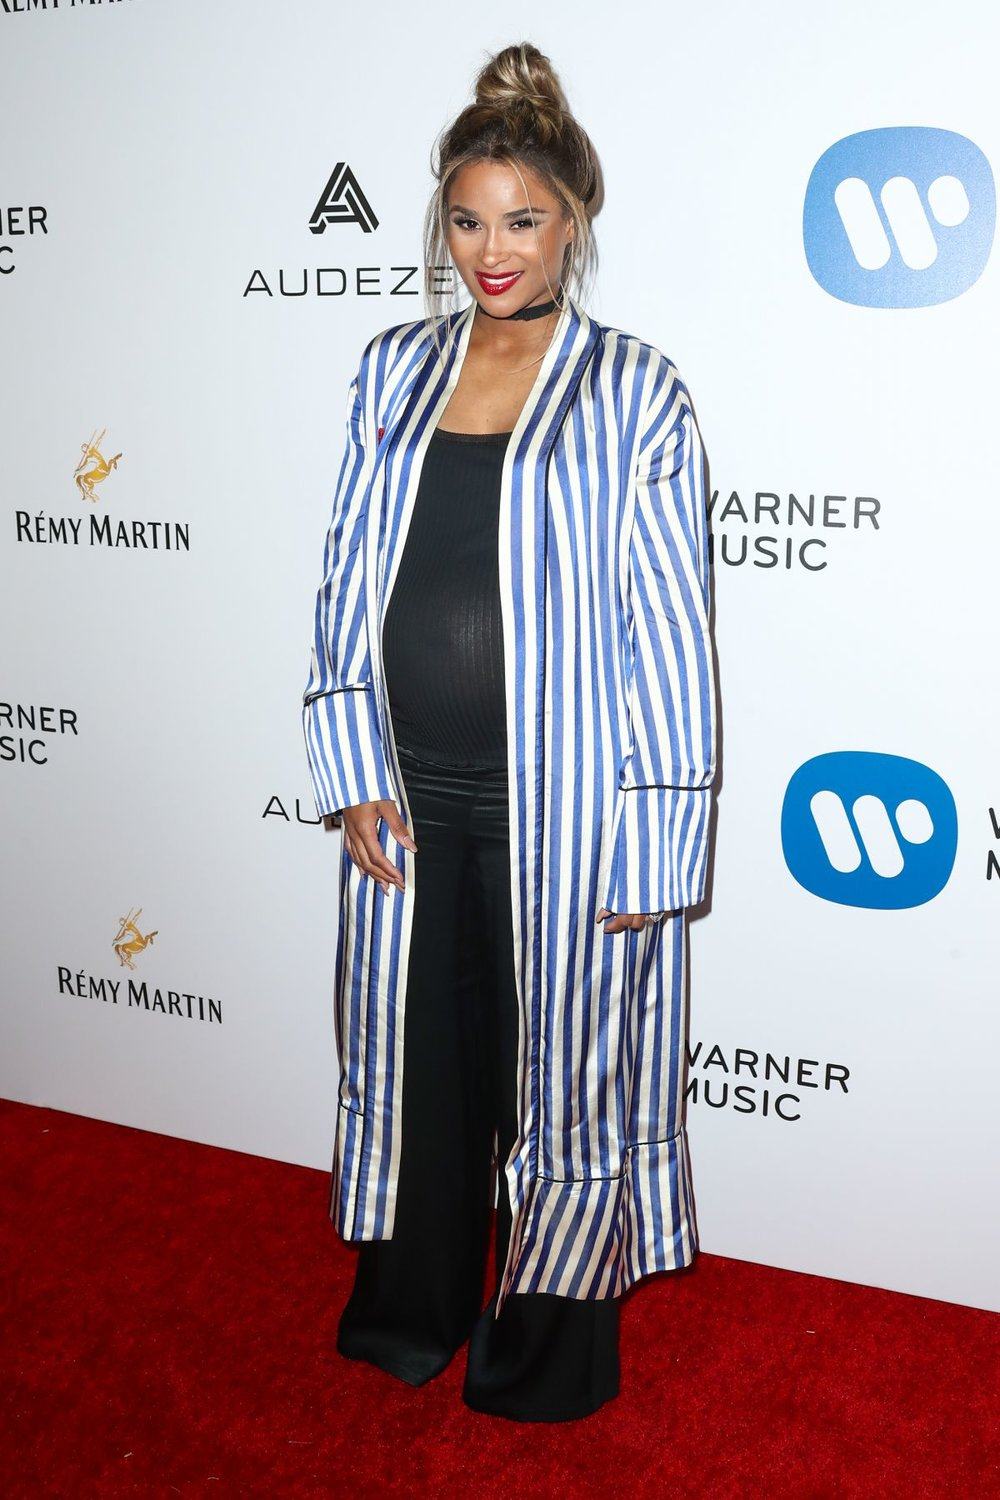 pregnant-ciara-at-warner-music-group-grammy-after-party-in-los-angeles-02-12-2017_4.jpg